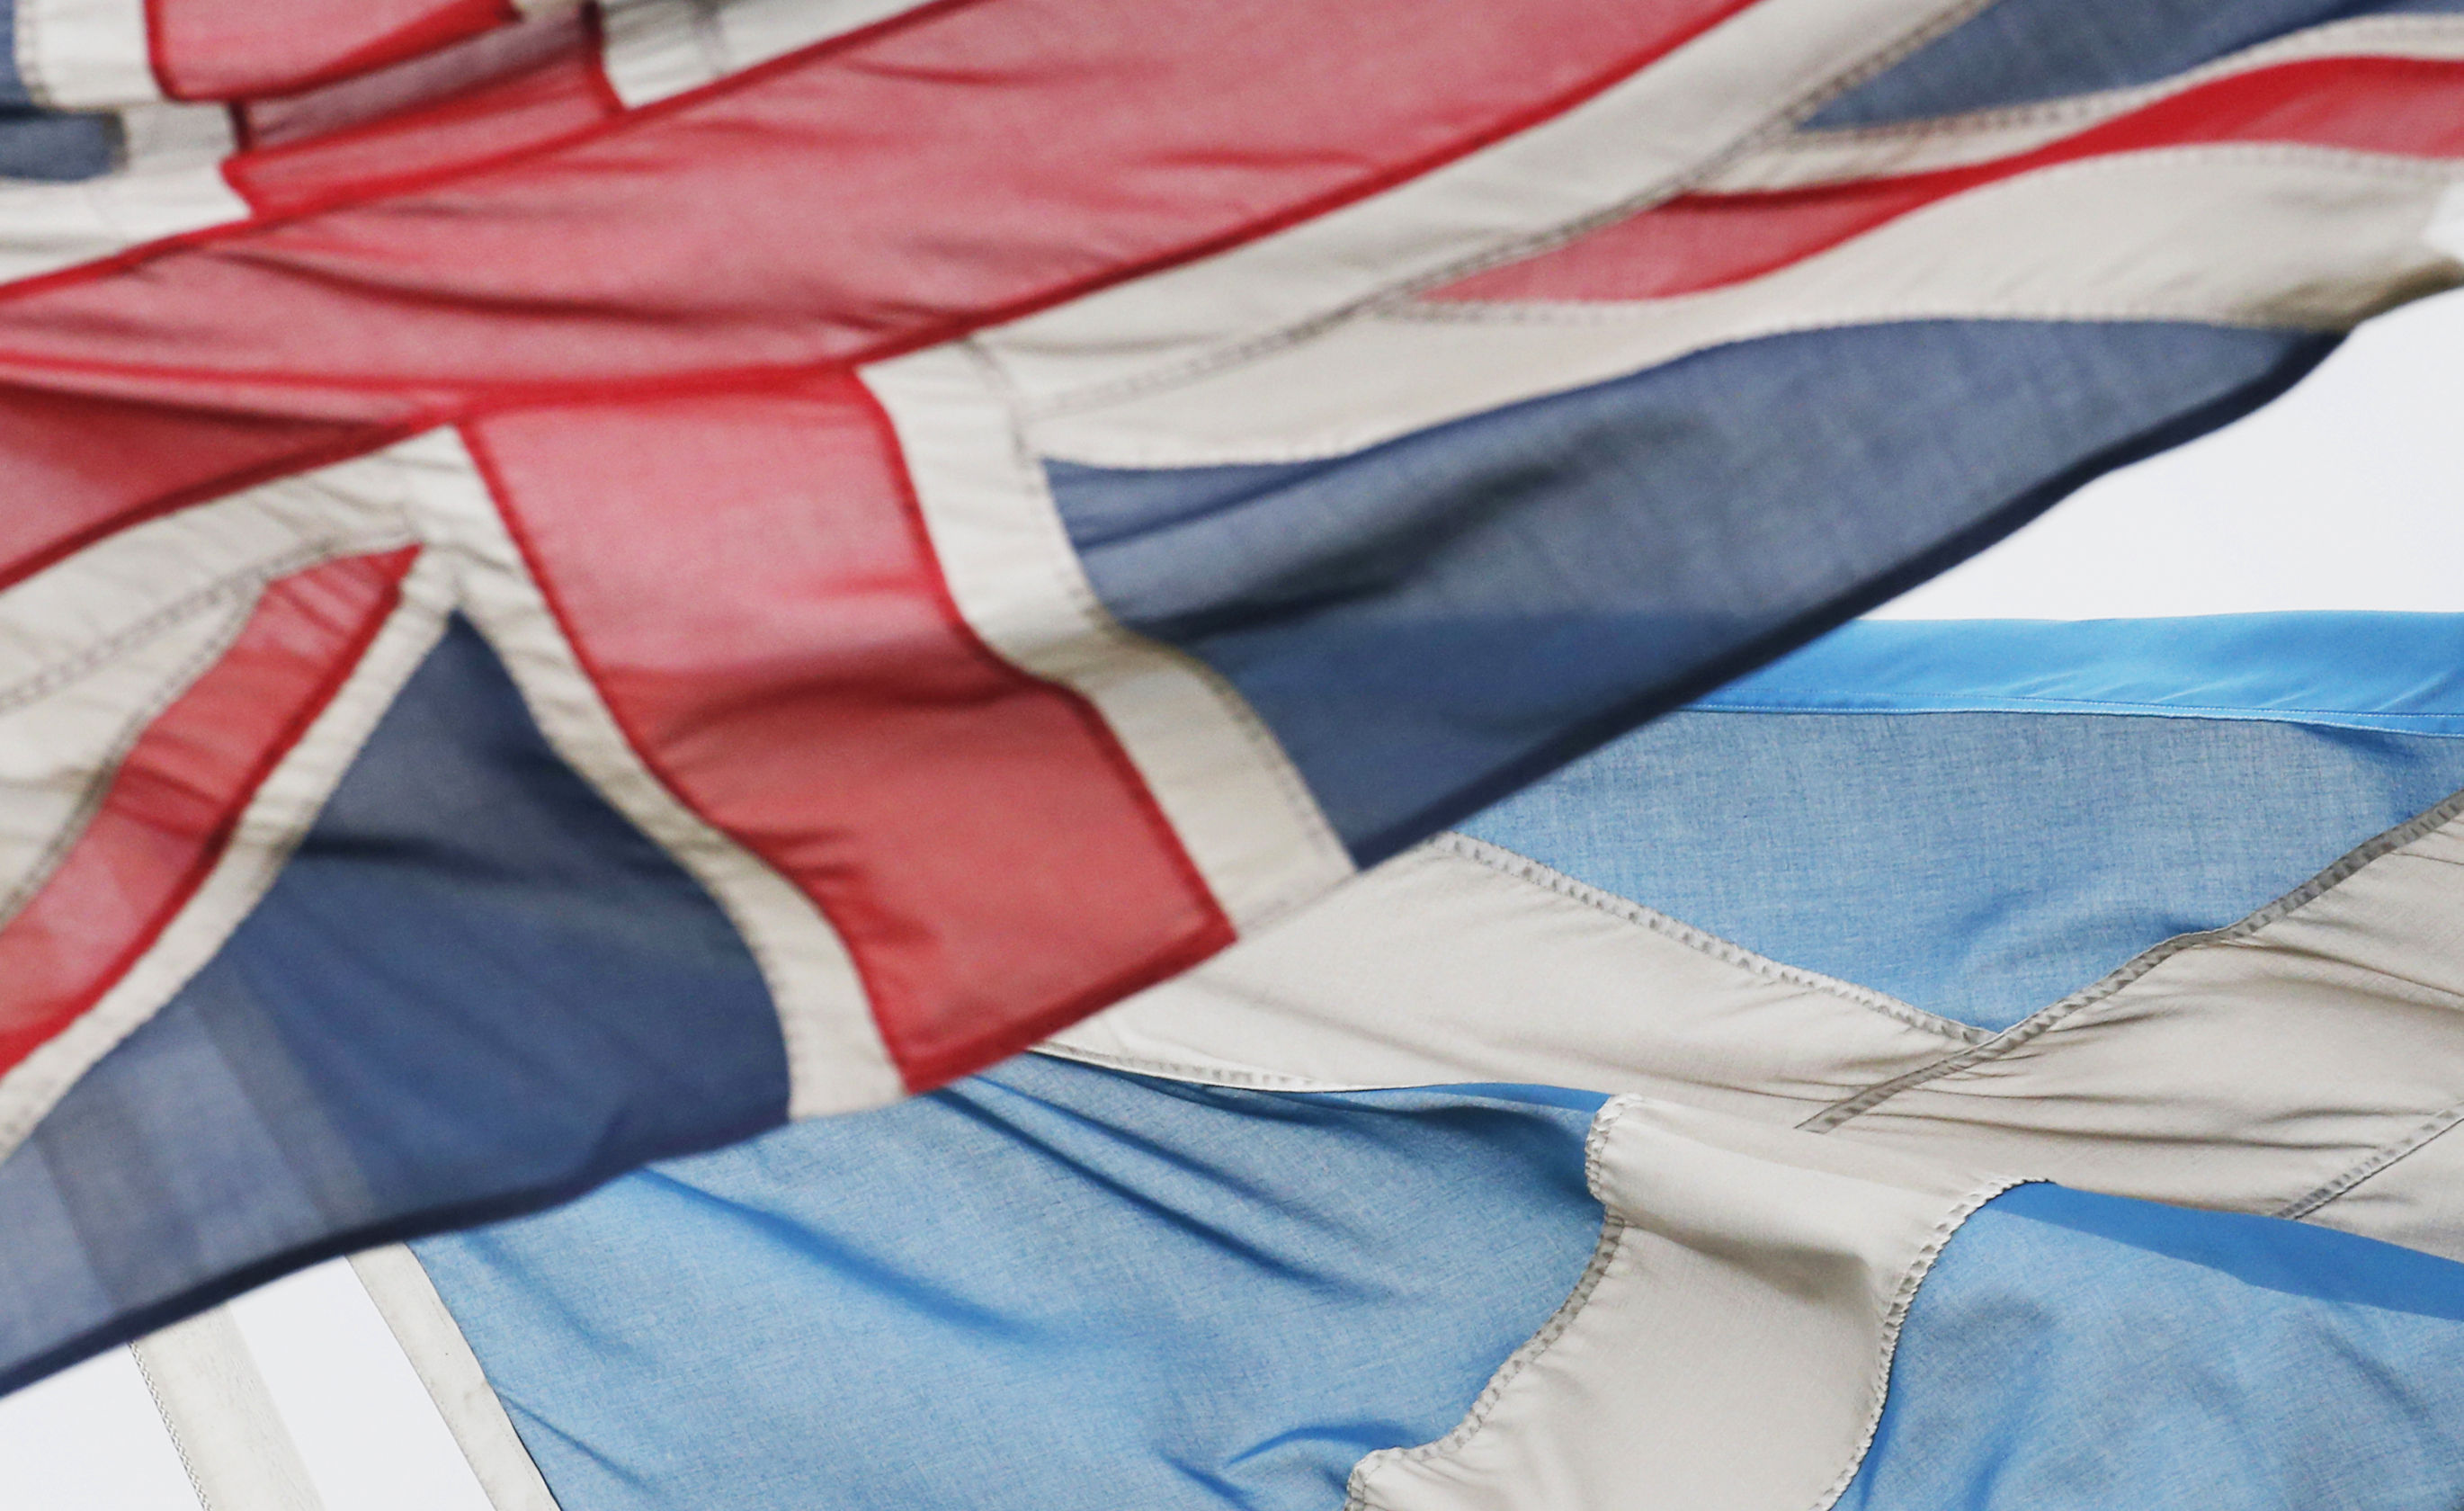 The 2014 referendum is at the heart of new data on democratic engagement